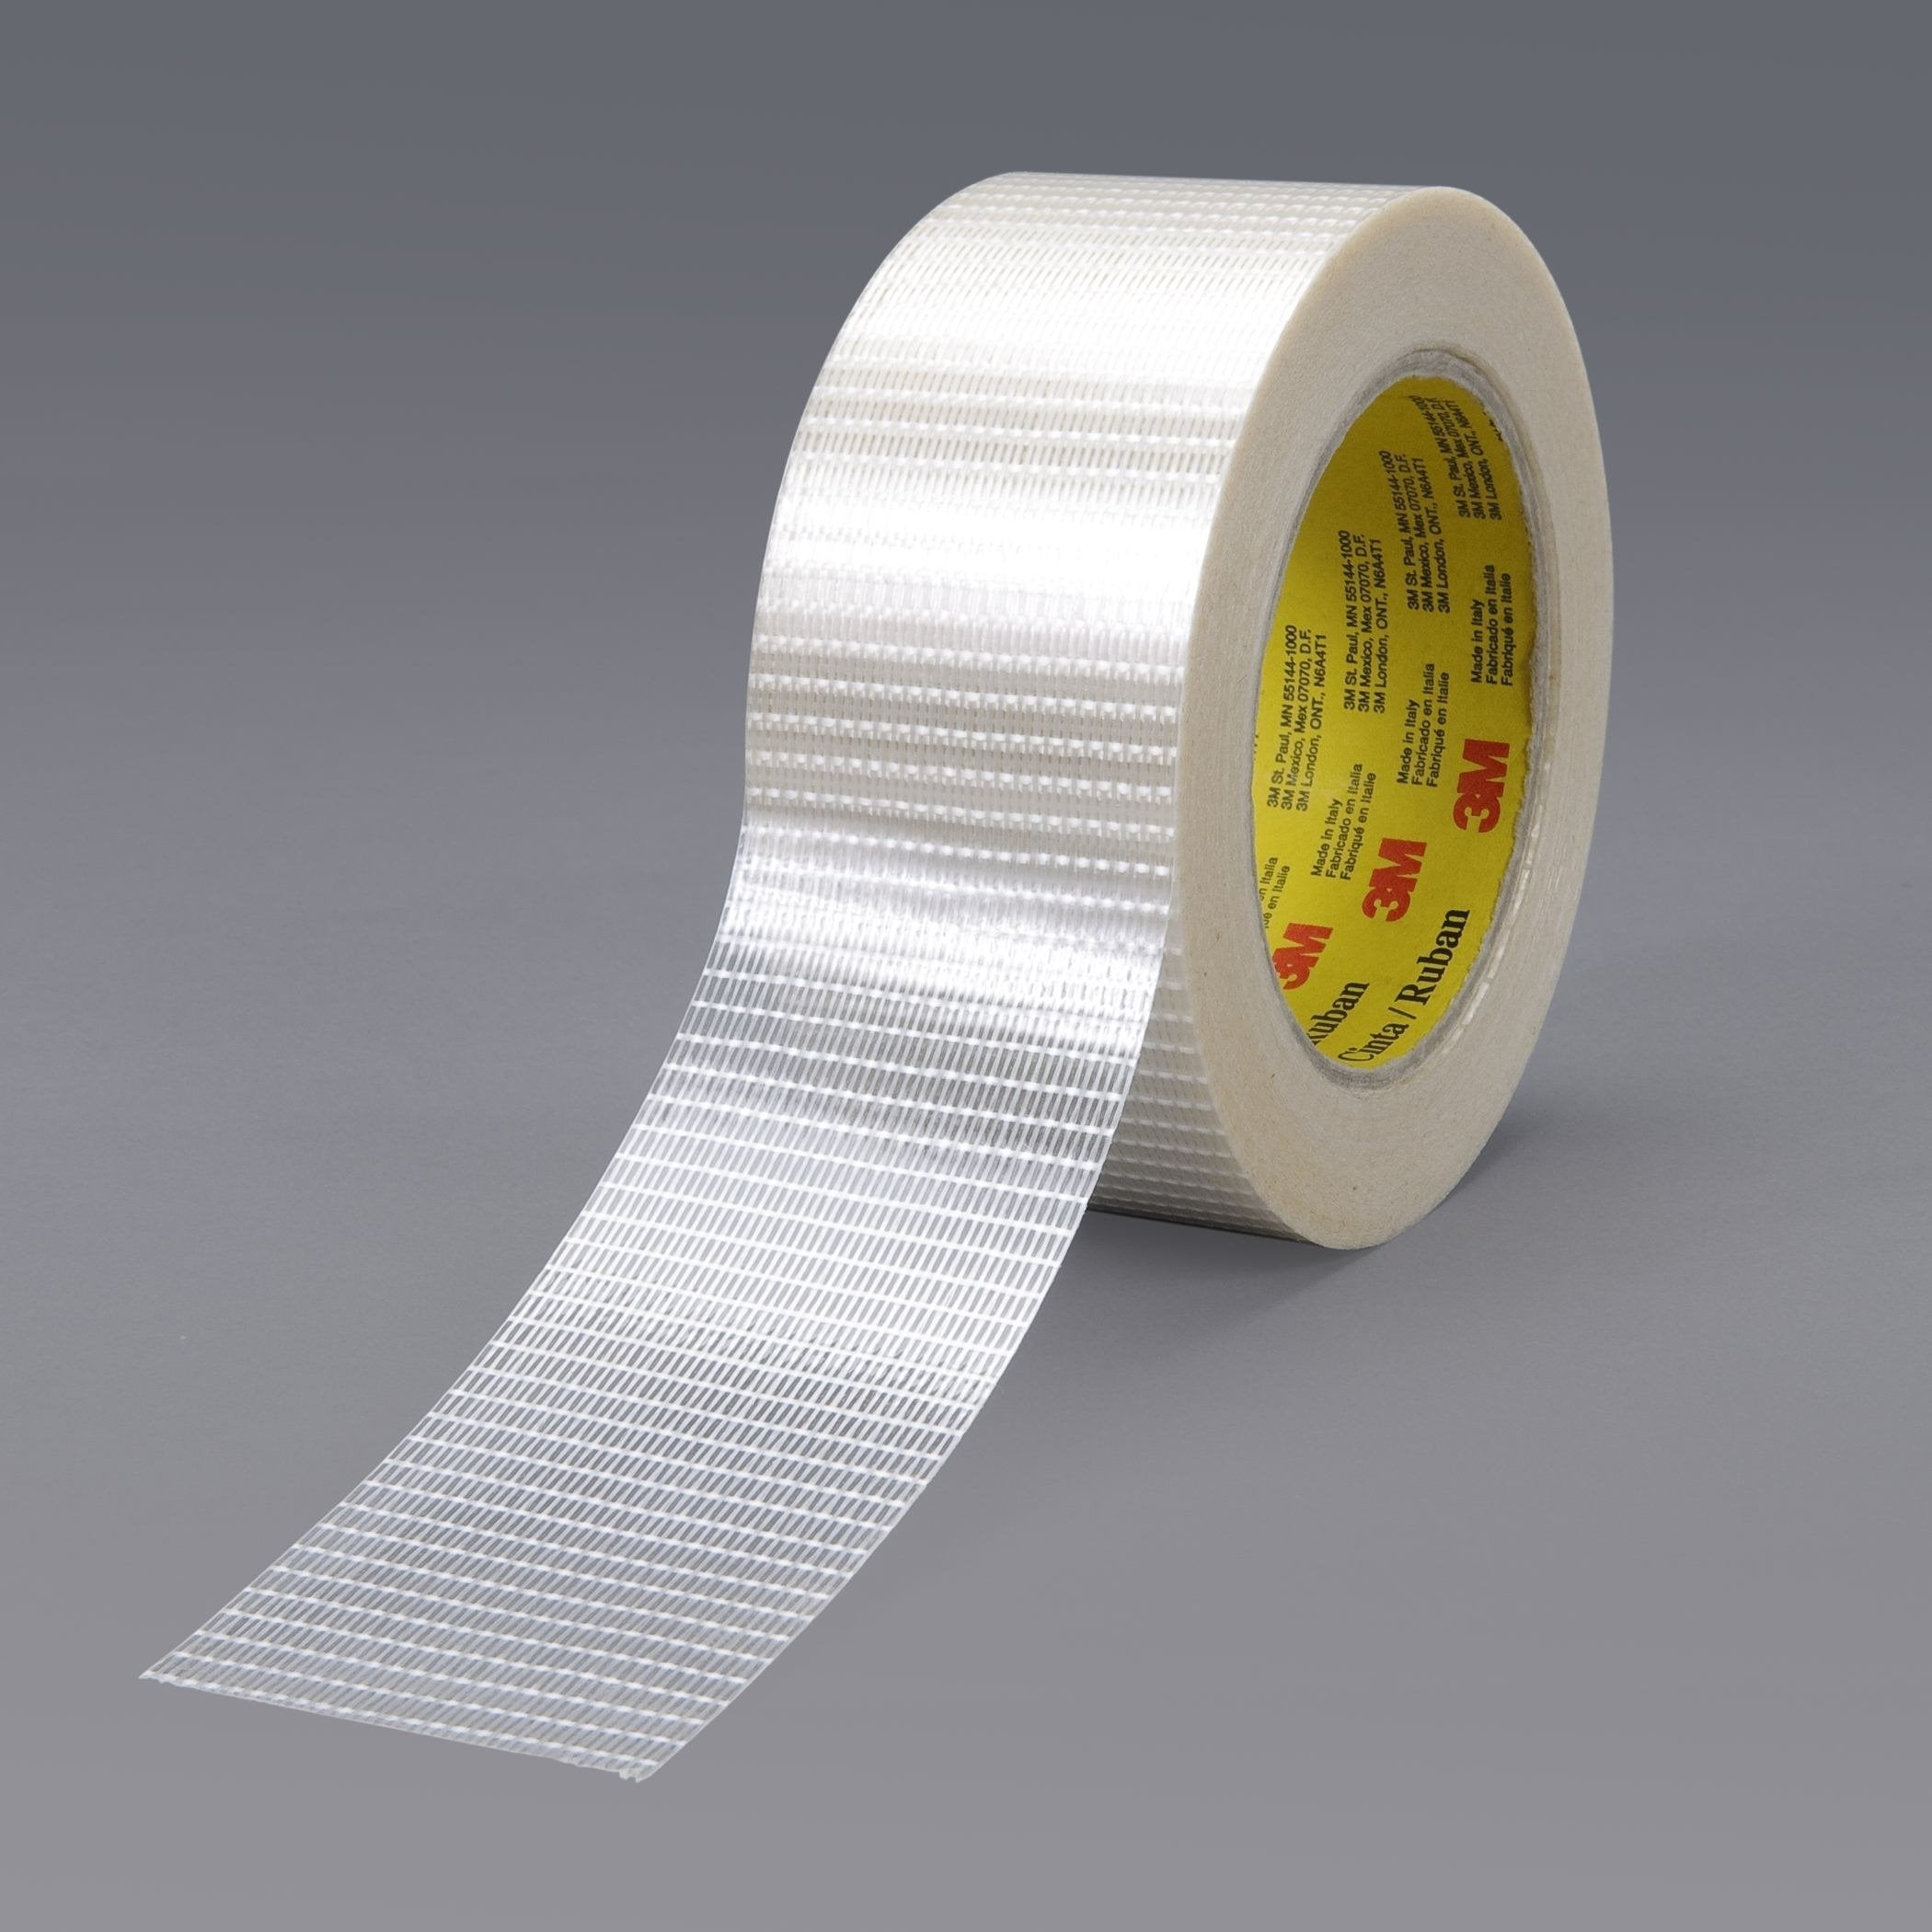 3M Bi-directional Filament Tape